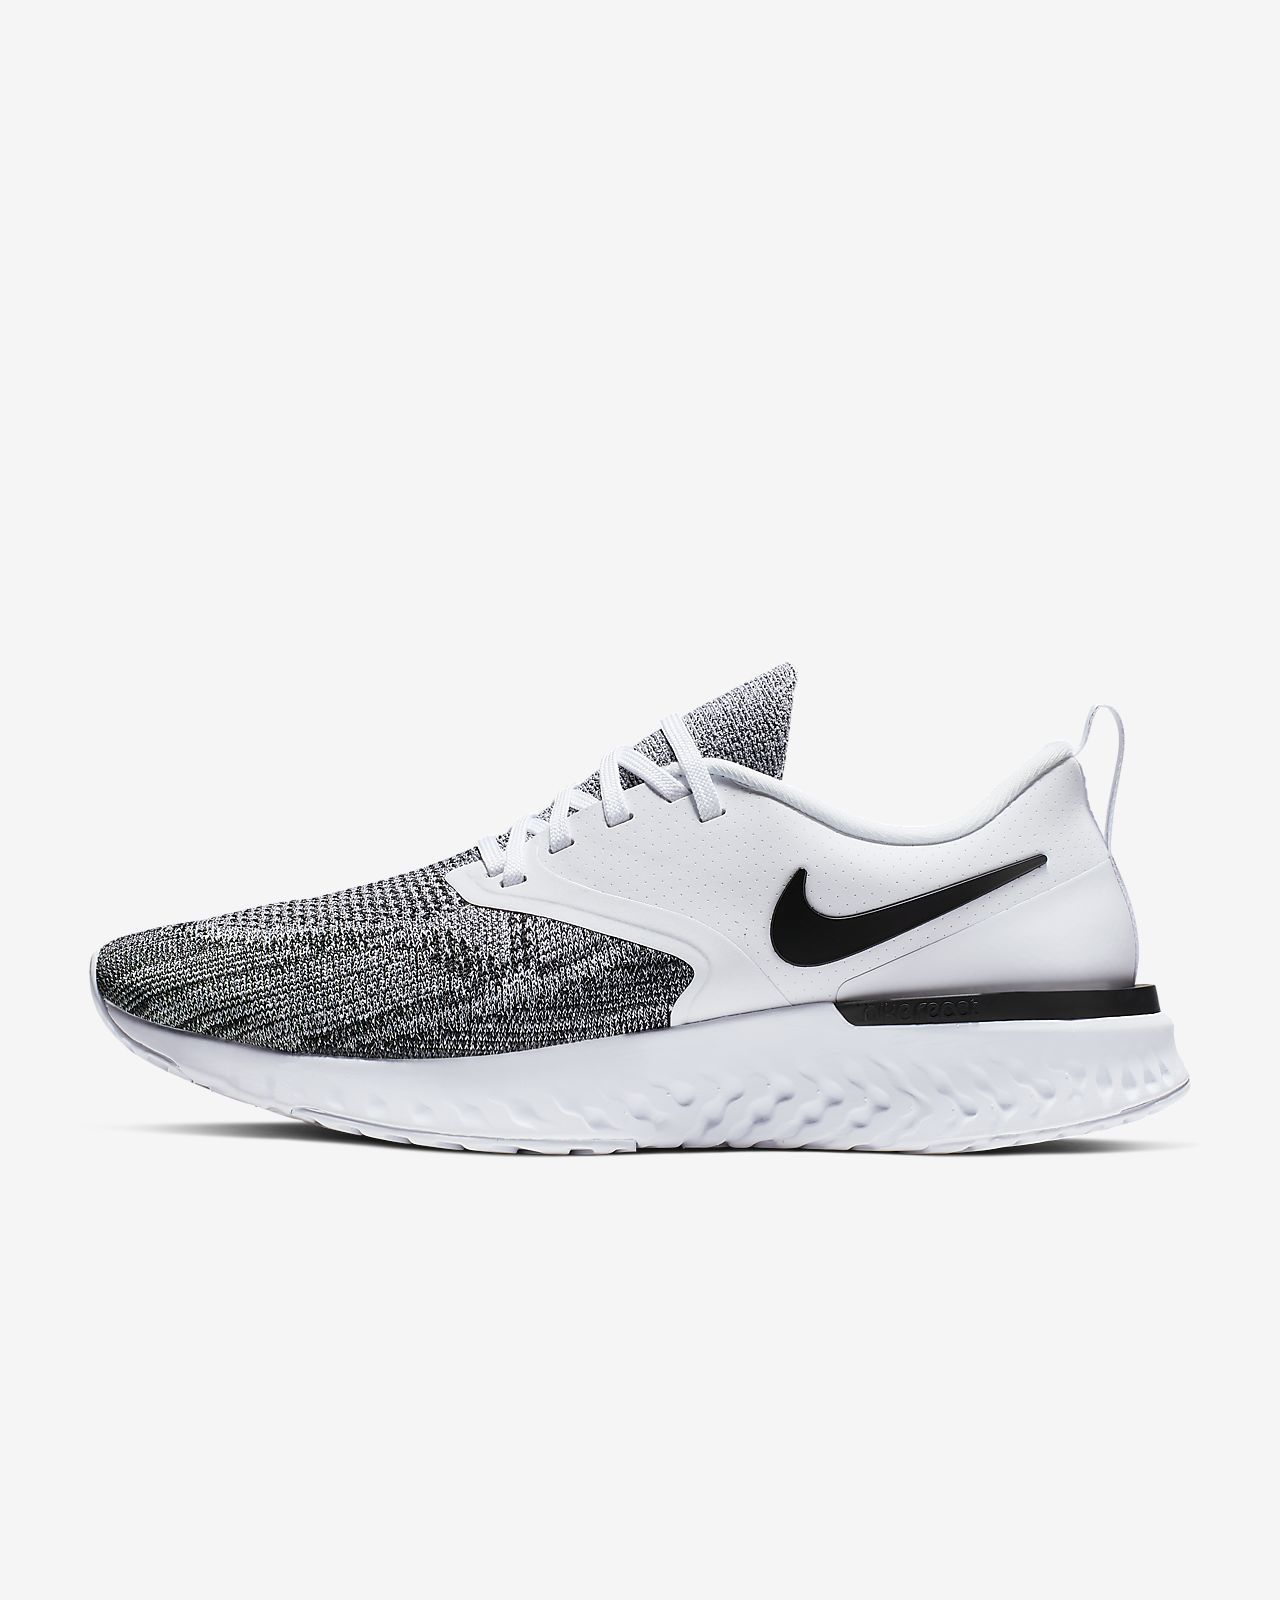 Entretener Guiño El respeto  Nike Odyssey React Flyknit 2 Women's Running Shoe. Nike.com | Womens  running shoes, Nike running shoes women, Walking shoes women